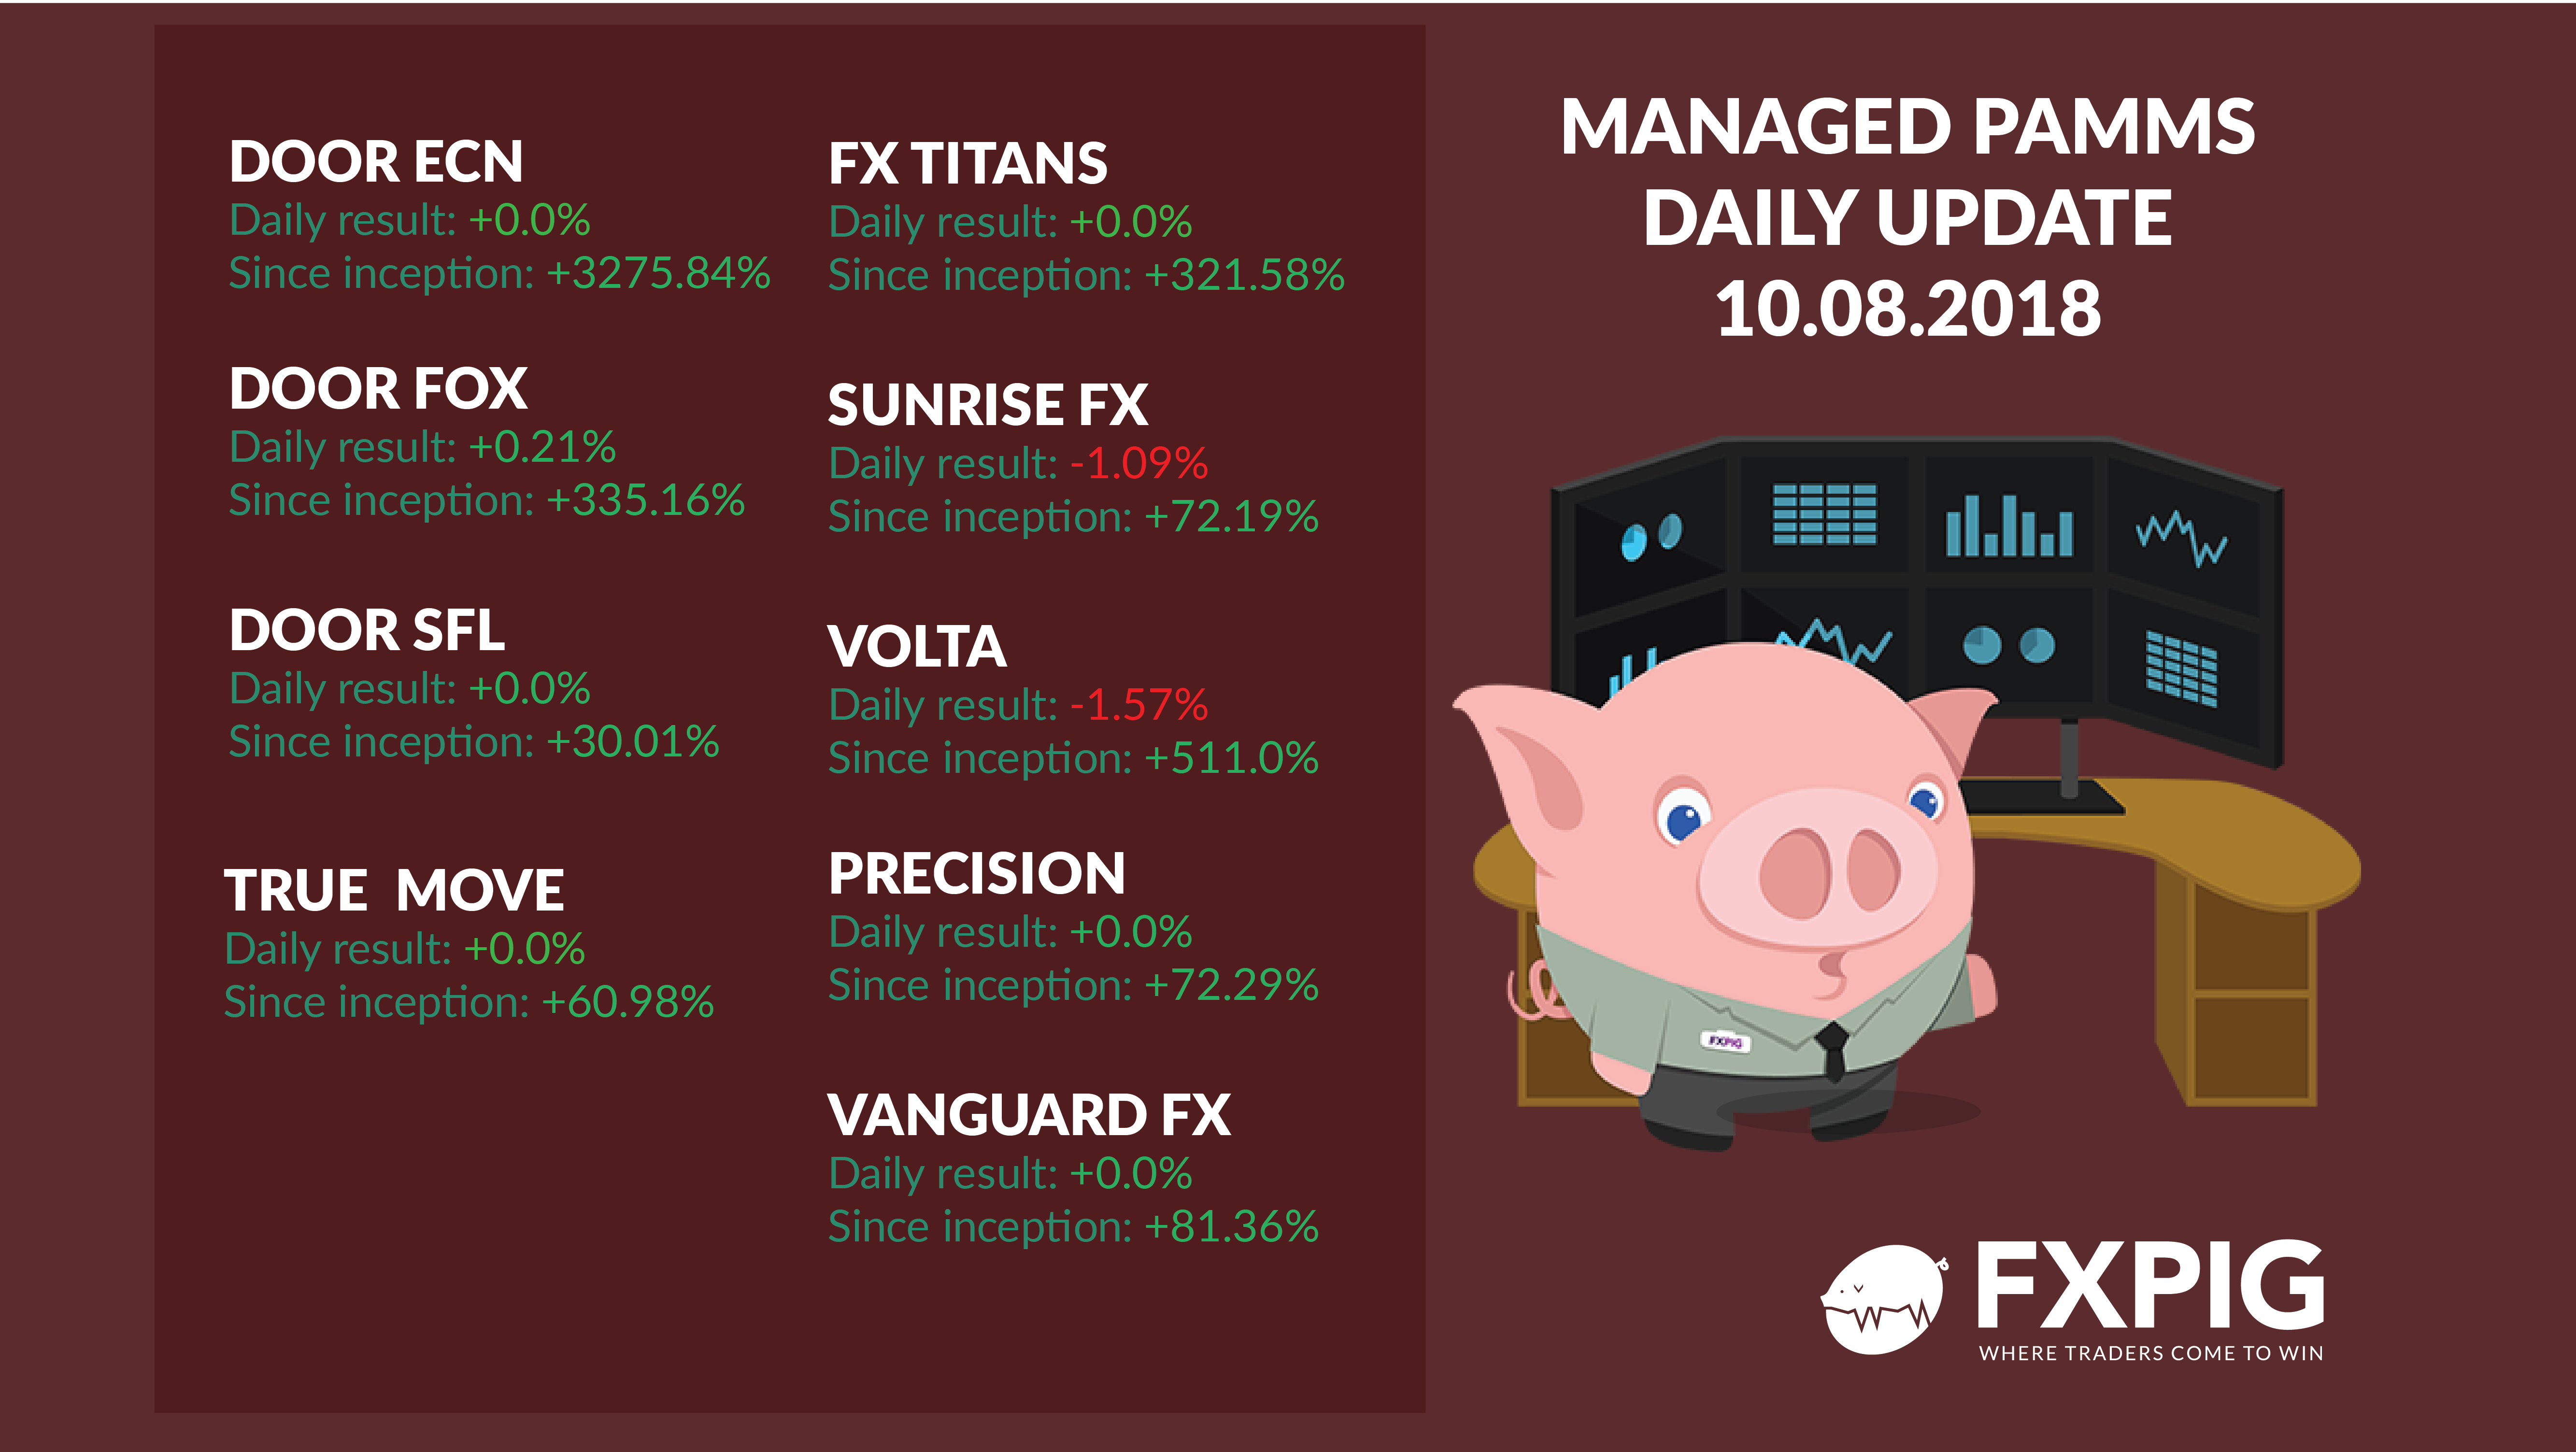 FOREX_managed-daily-accounts1008_FXPIG